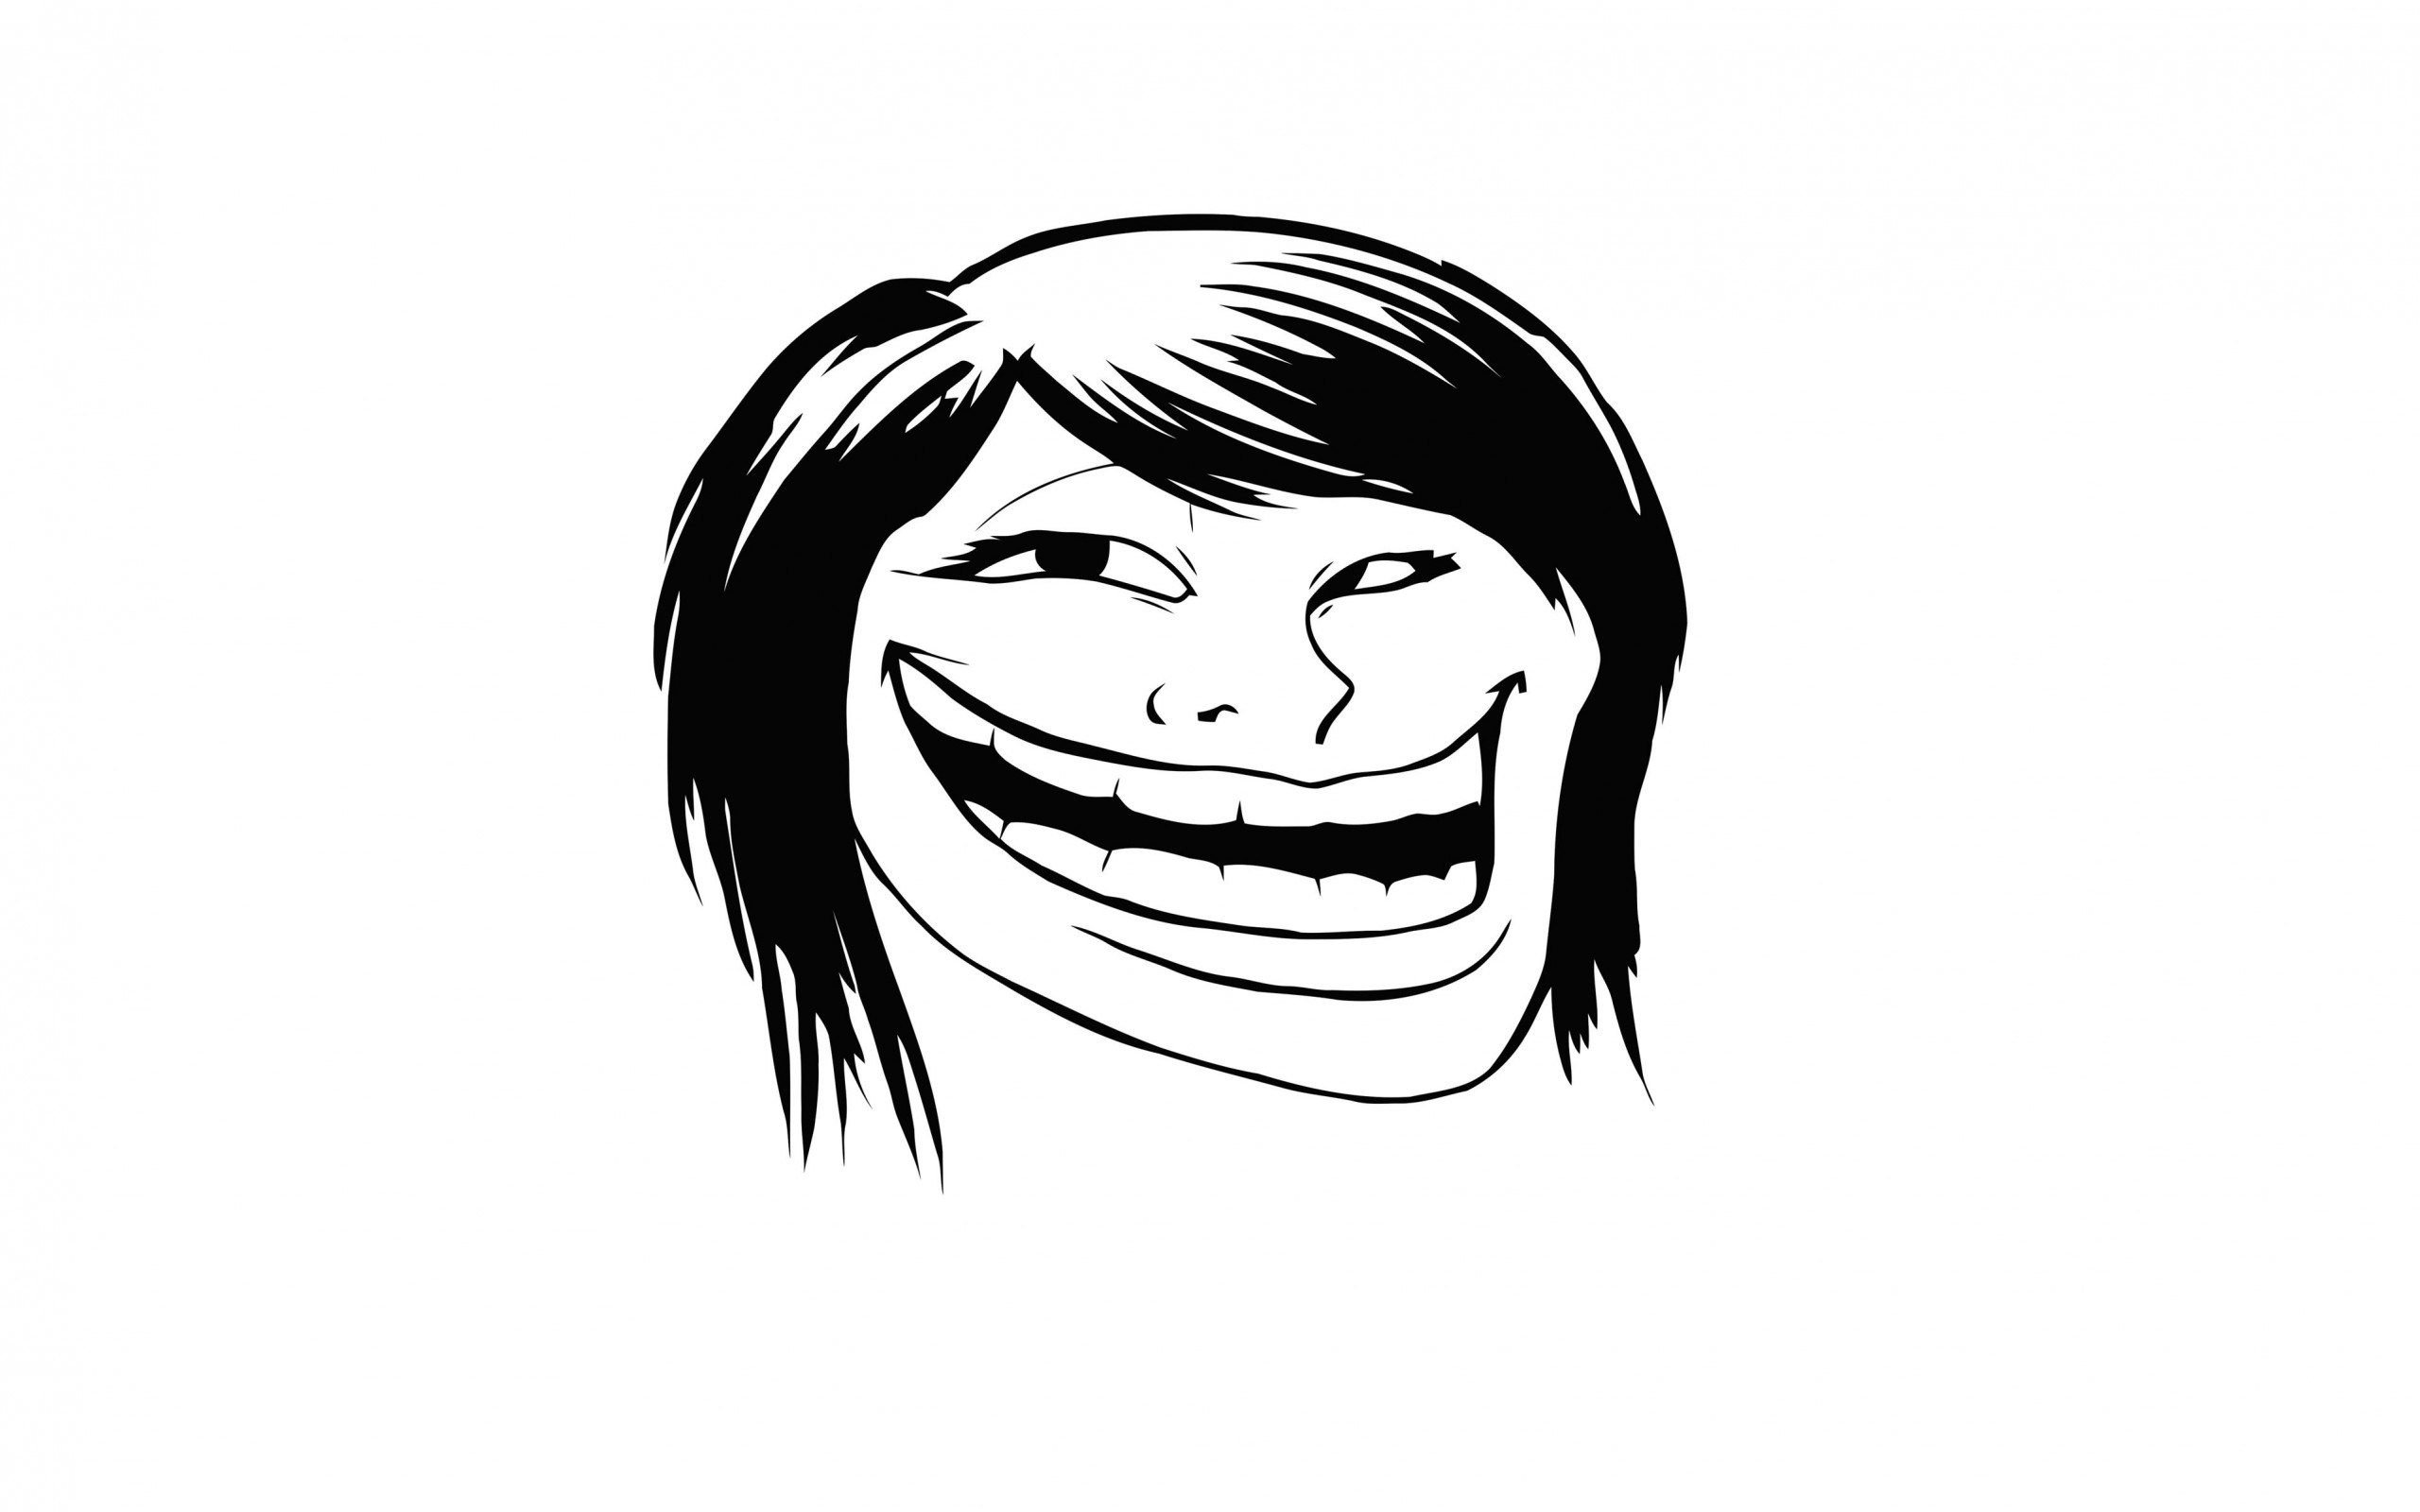 Female Troll Face Meme Wallpaper for Desktop 2560x1600